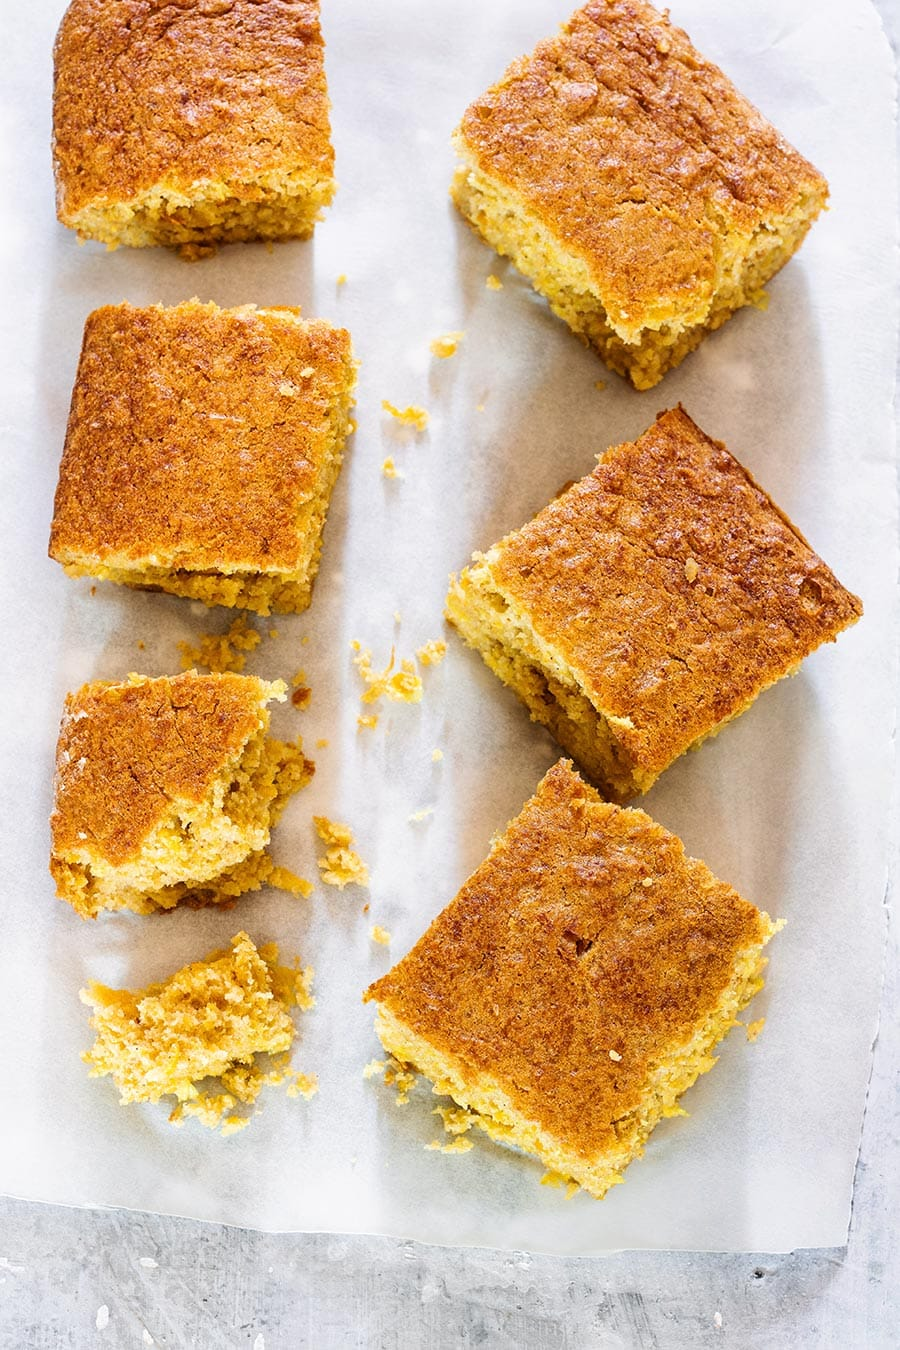 Pastel de elote (aka pan de elote) cut into squares and placed on parchment paper (seen from above).